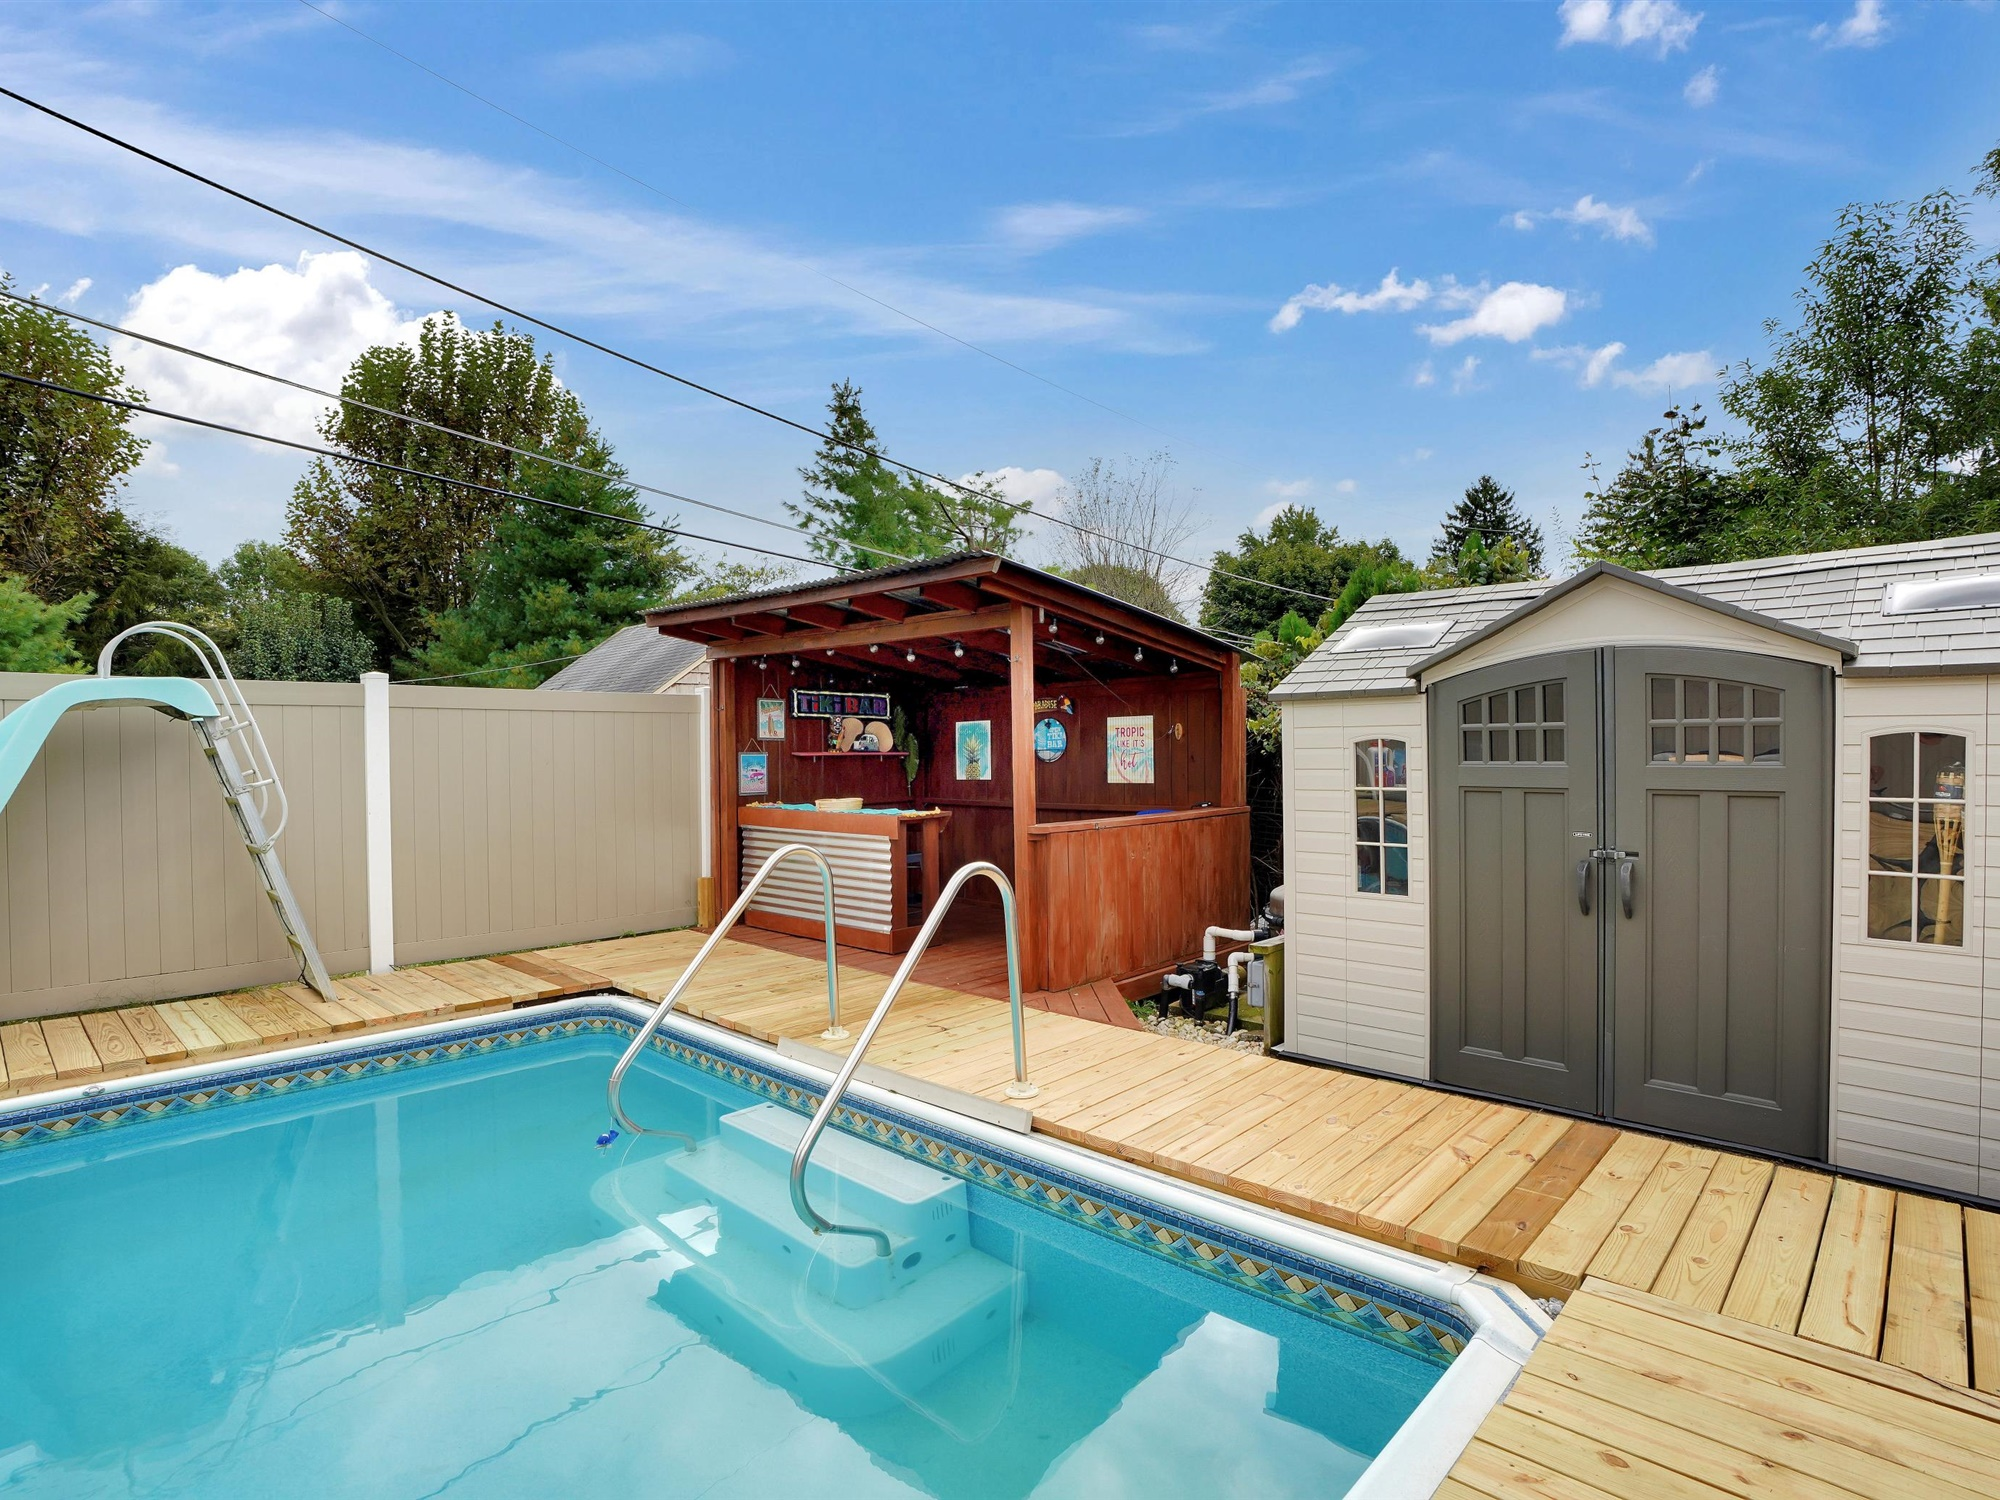 2022 Kline St - view of pool and shed